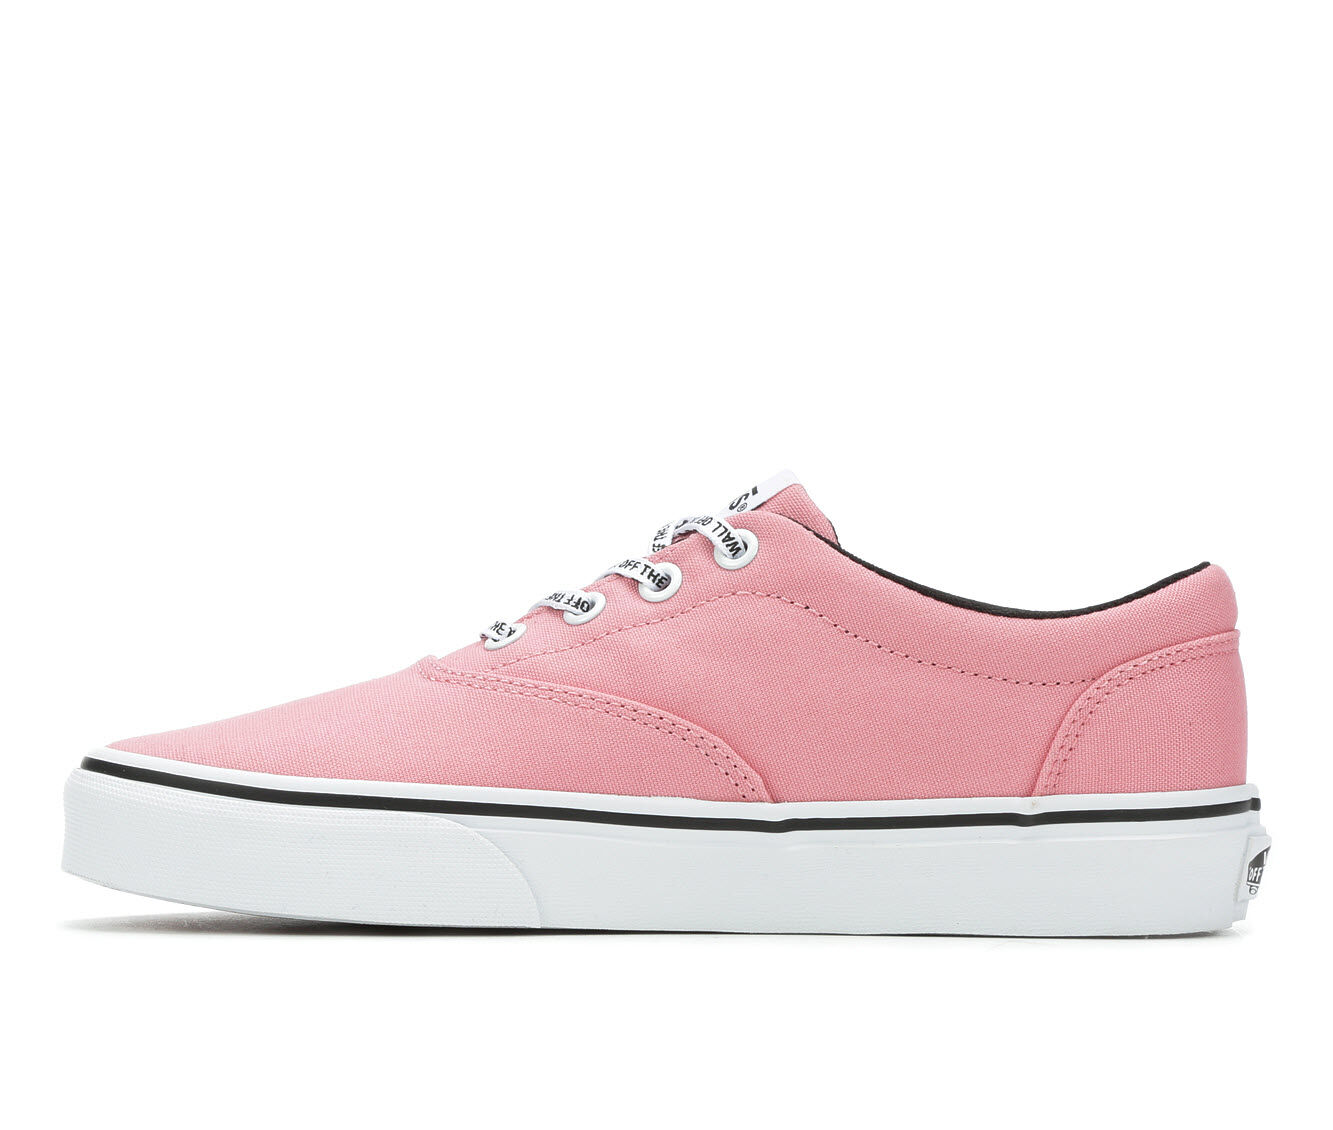 Women's Vans Doheny Skate Shoes